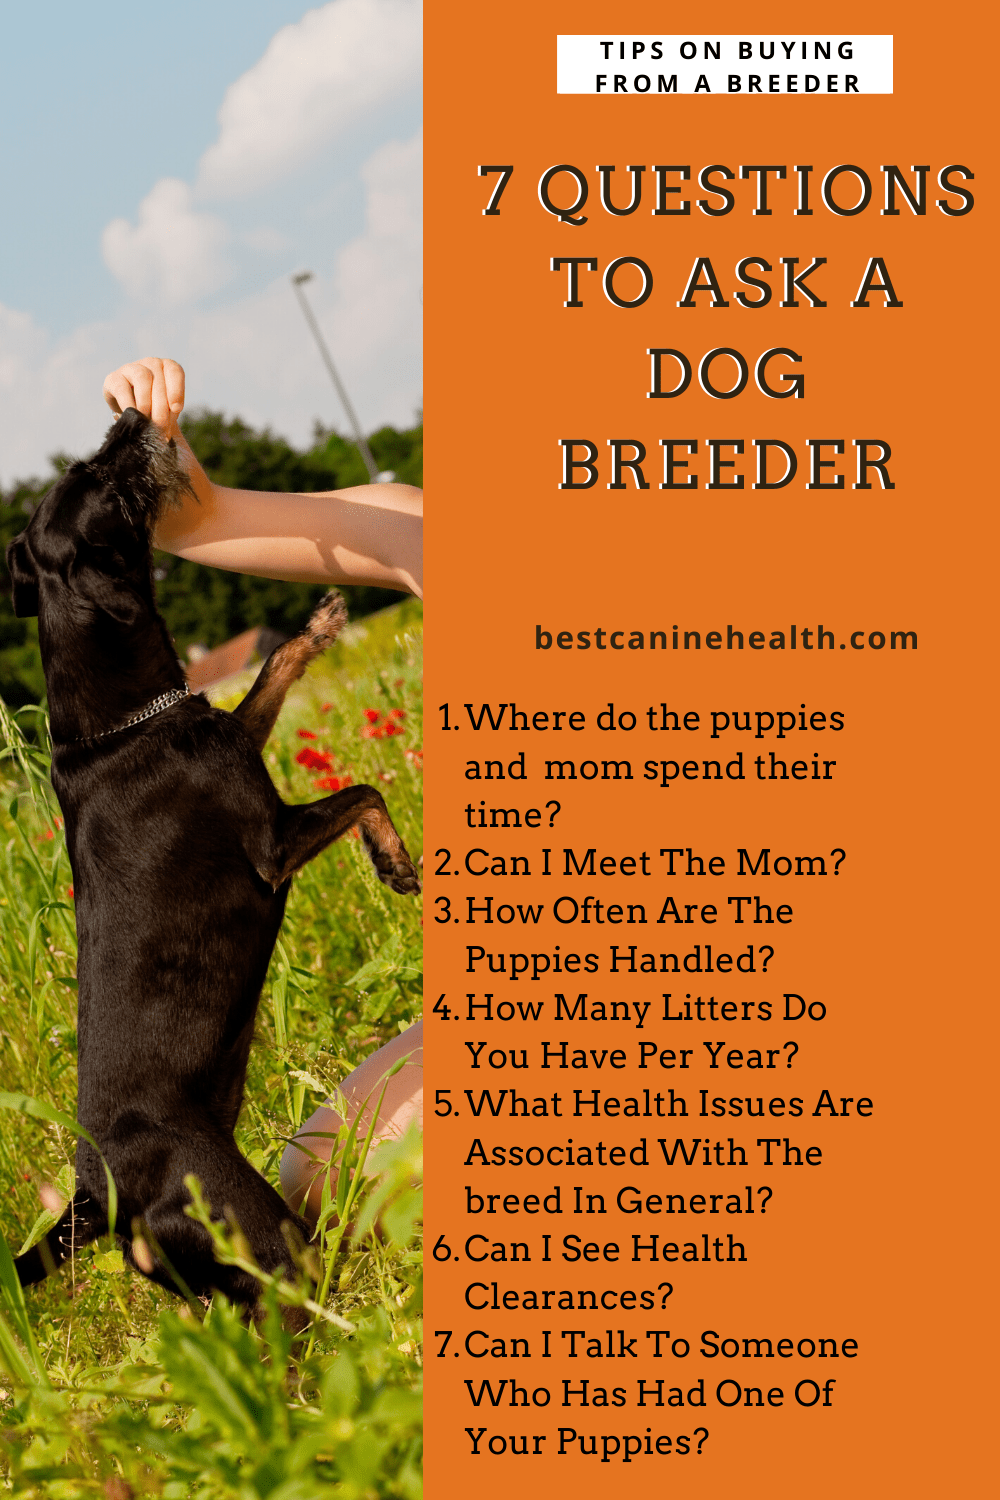 Buying from a breeder